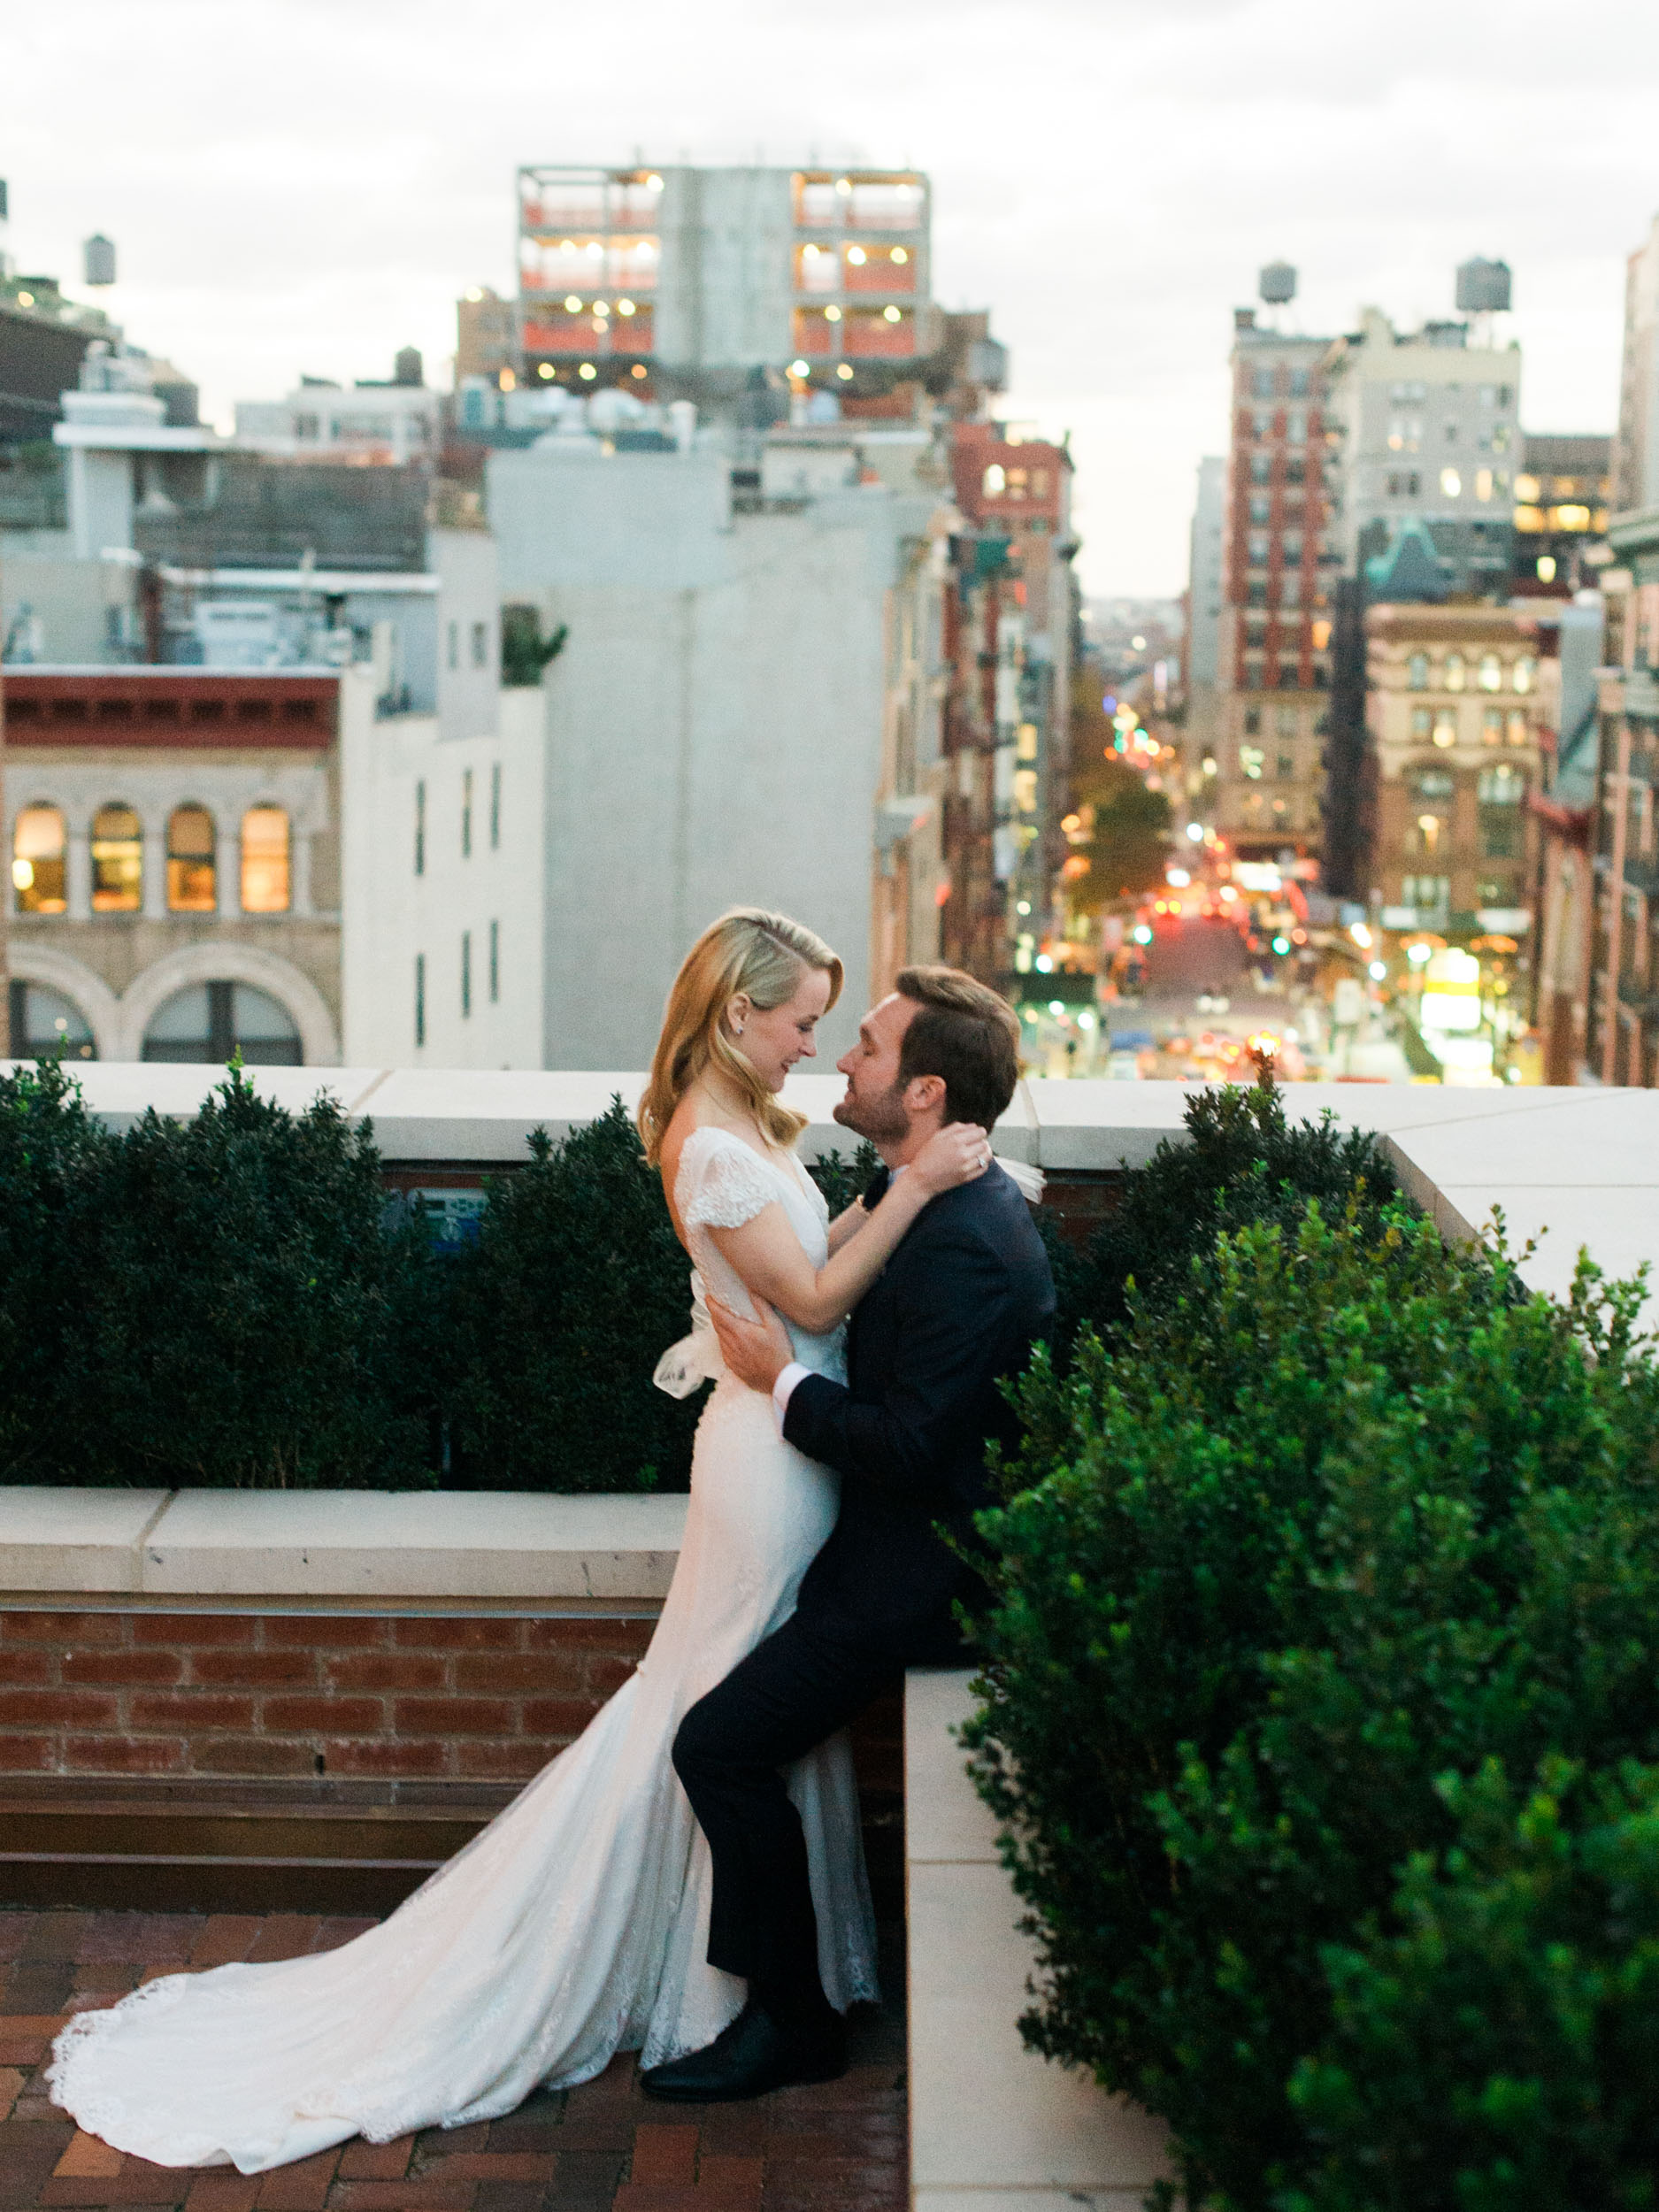 Bowery Hotel Wedding Photographer 2 - The Bowery Hotel